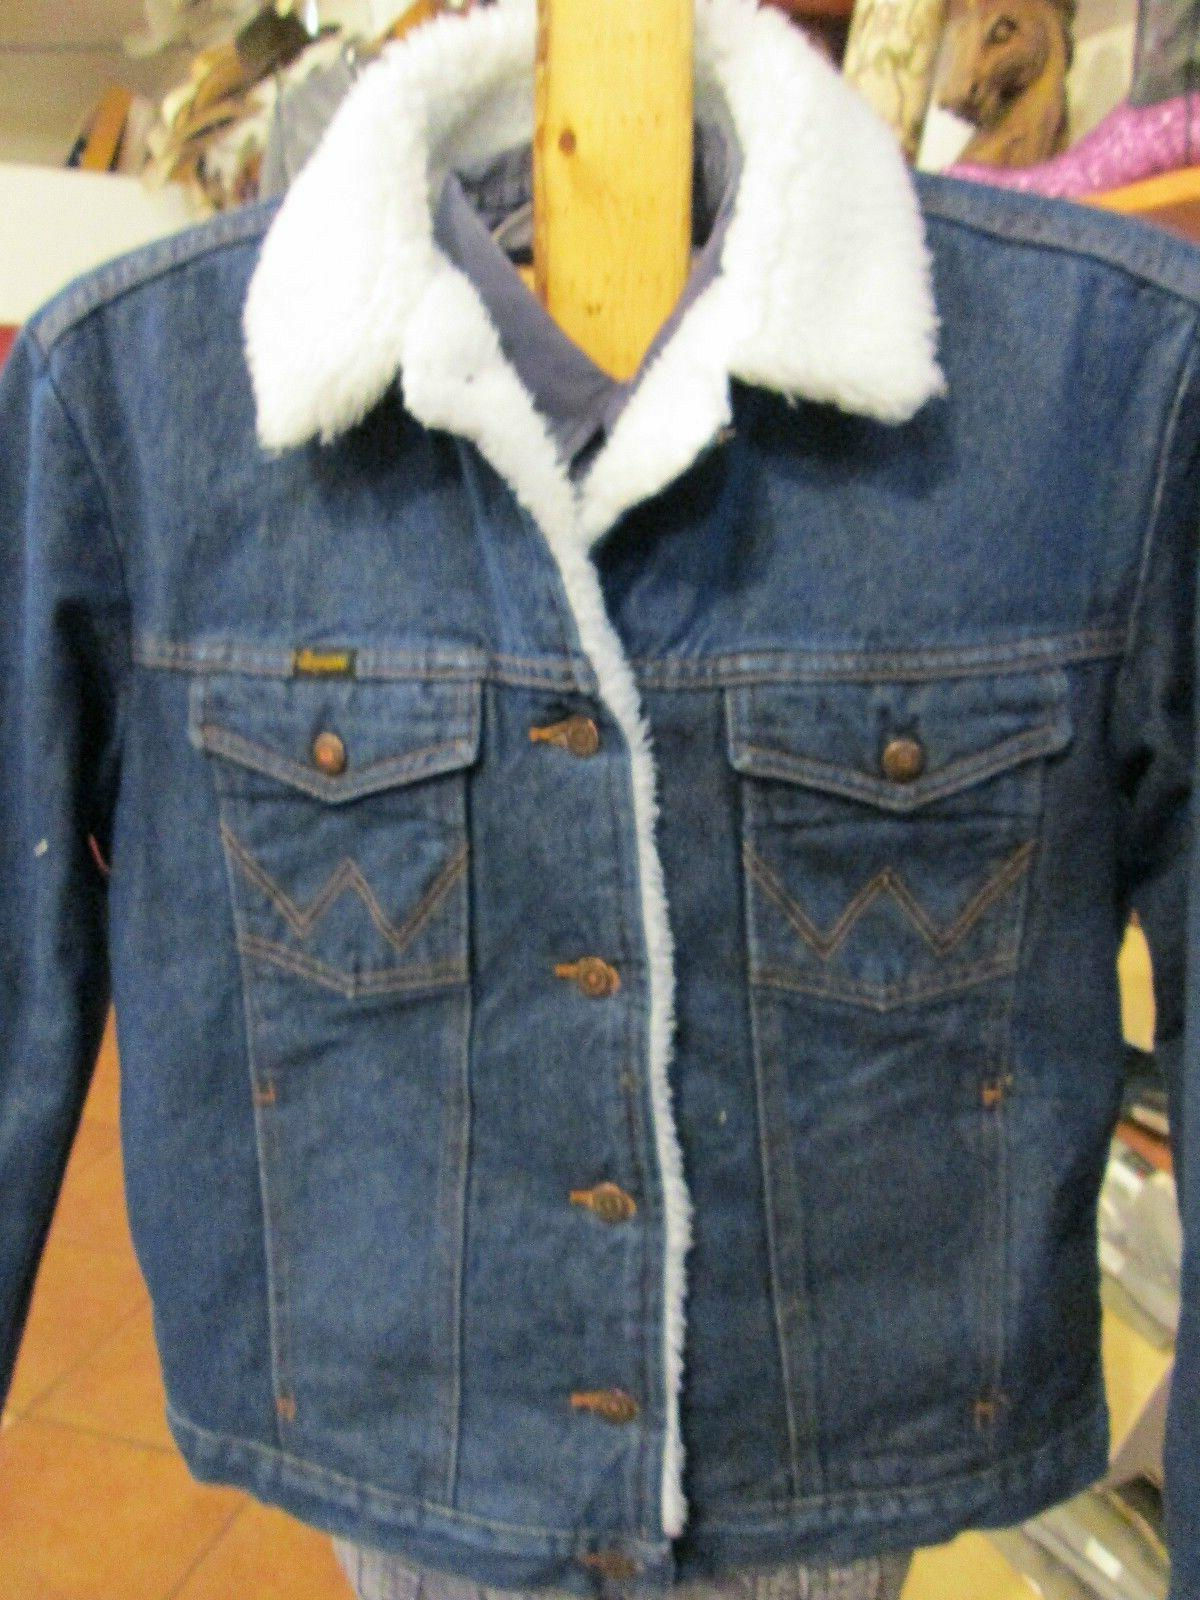 NWT Wrangler Western Sherpa Lined Heavy Denim Jean Jacket Co